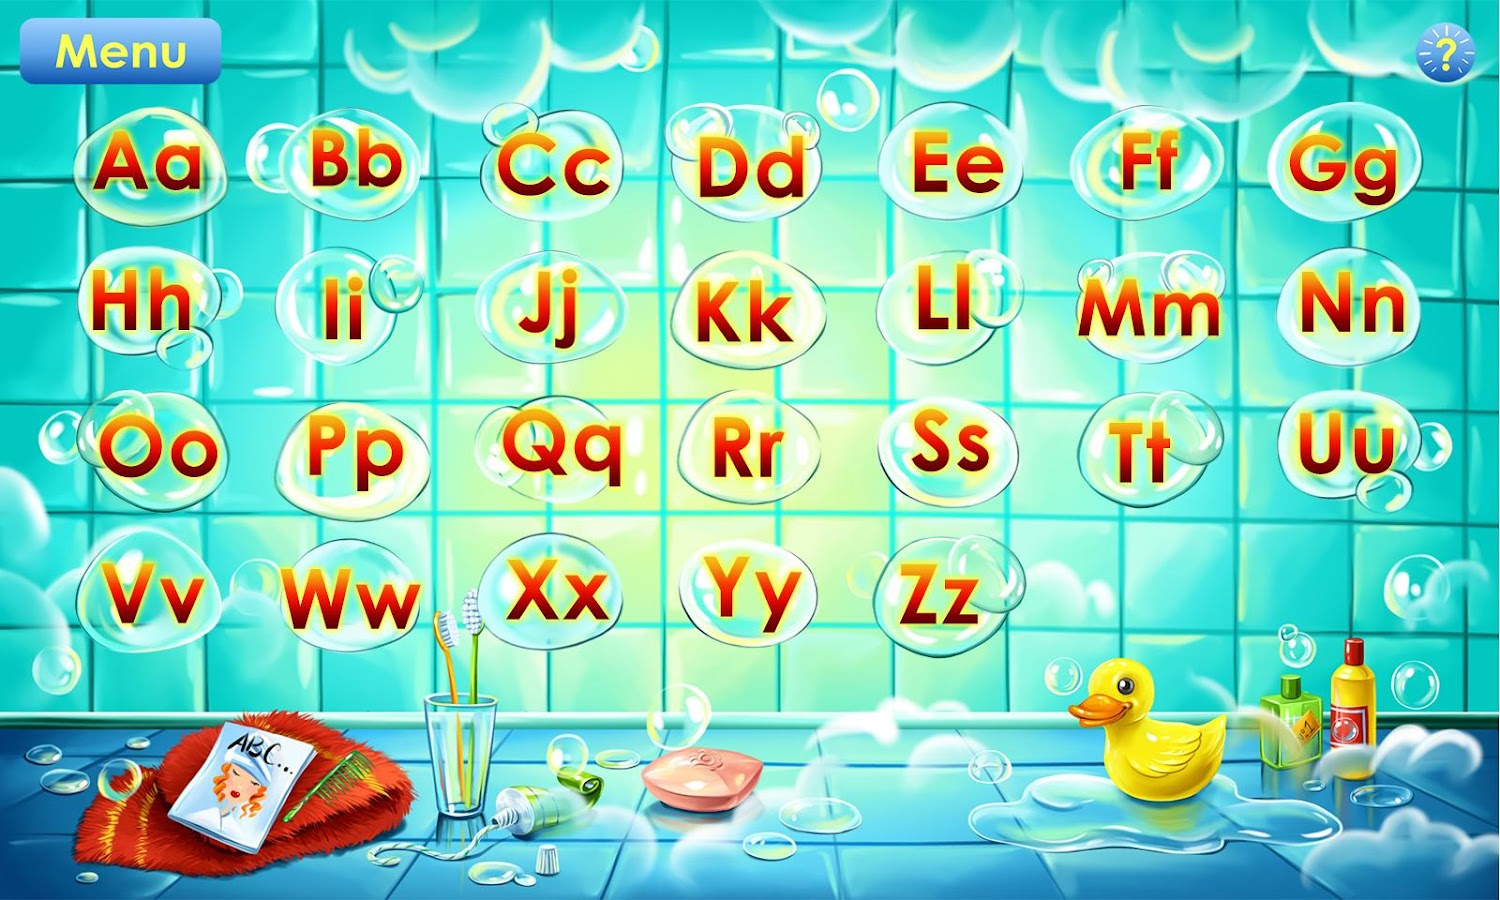 Abcd For Kids Learn Alphabet And Abc For Toddlers